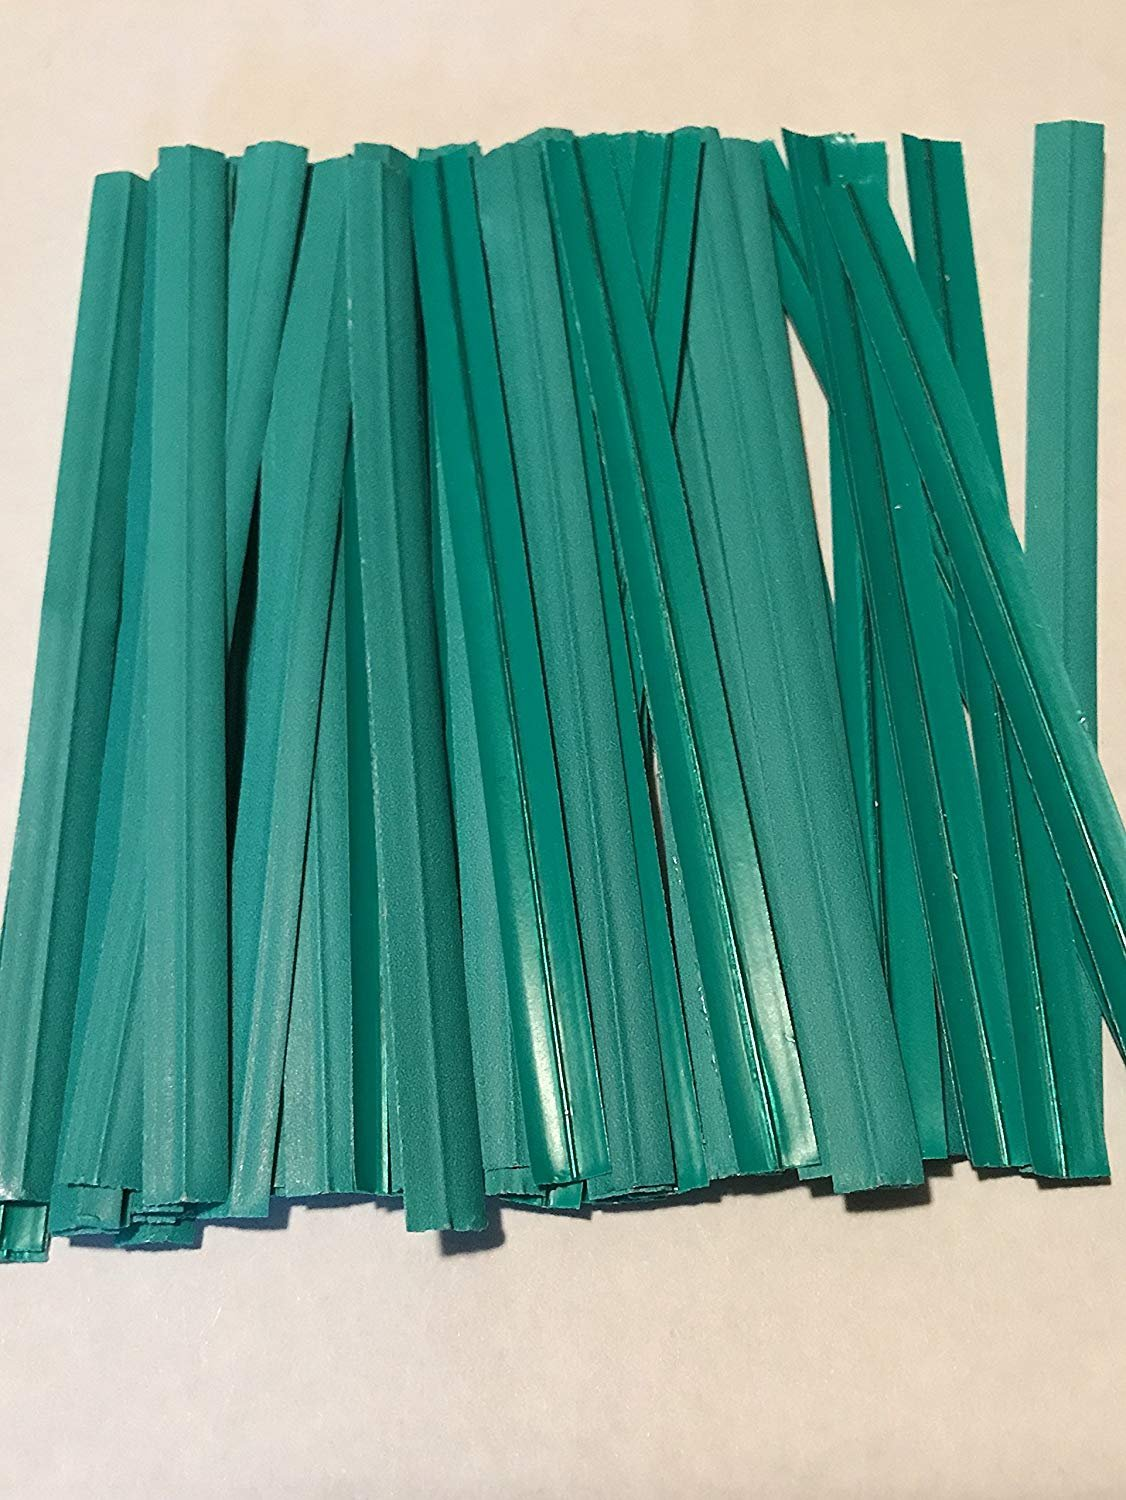 2000 Twist Ties 7'' Length Plastic Coated Pater No Rip Cellophane Assorted Colors (Green)